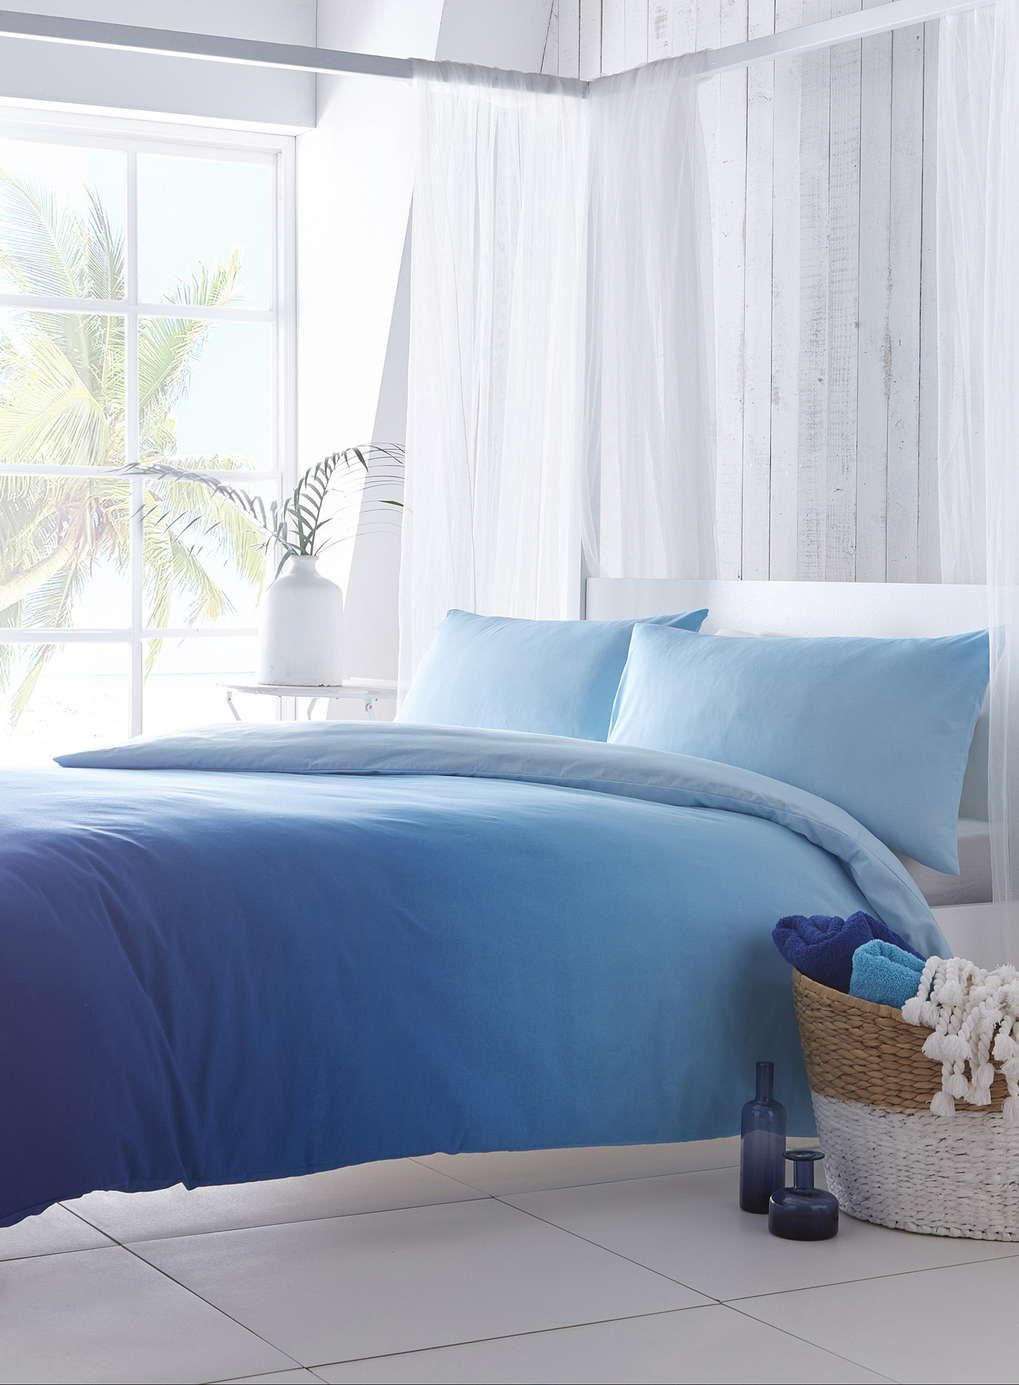 Santorini Blue Ombre Bedding Set Bedding Sets Home Lighting Furniture Bed Linens Luxury Ombre Bedding Blue Bedding Sets